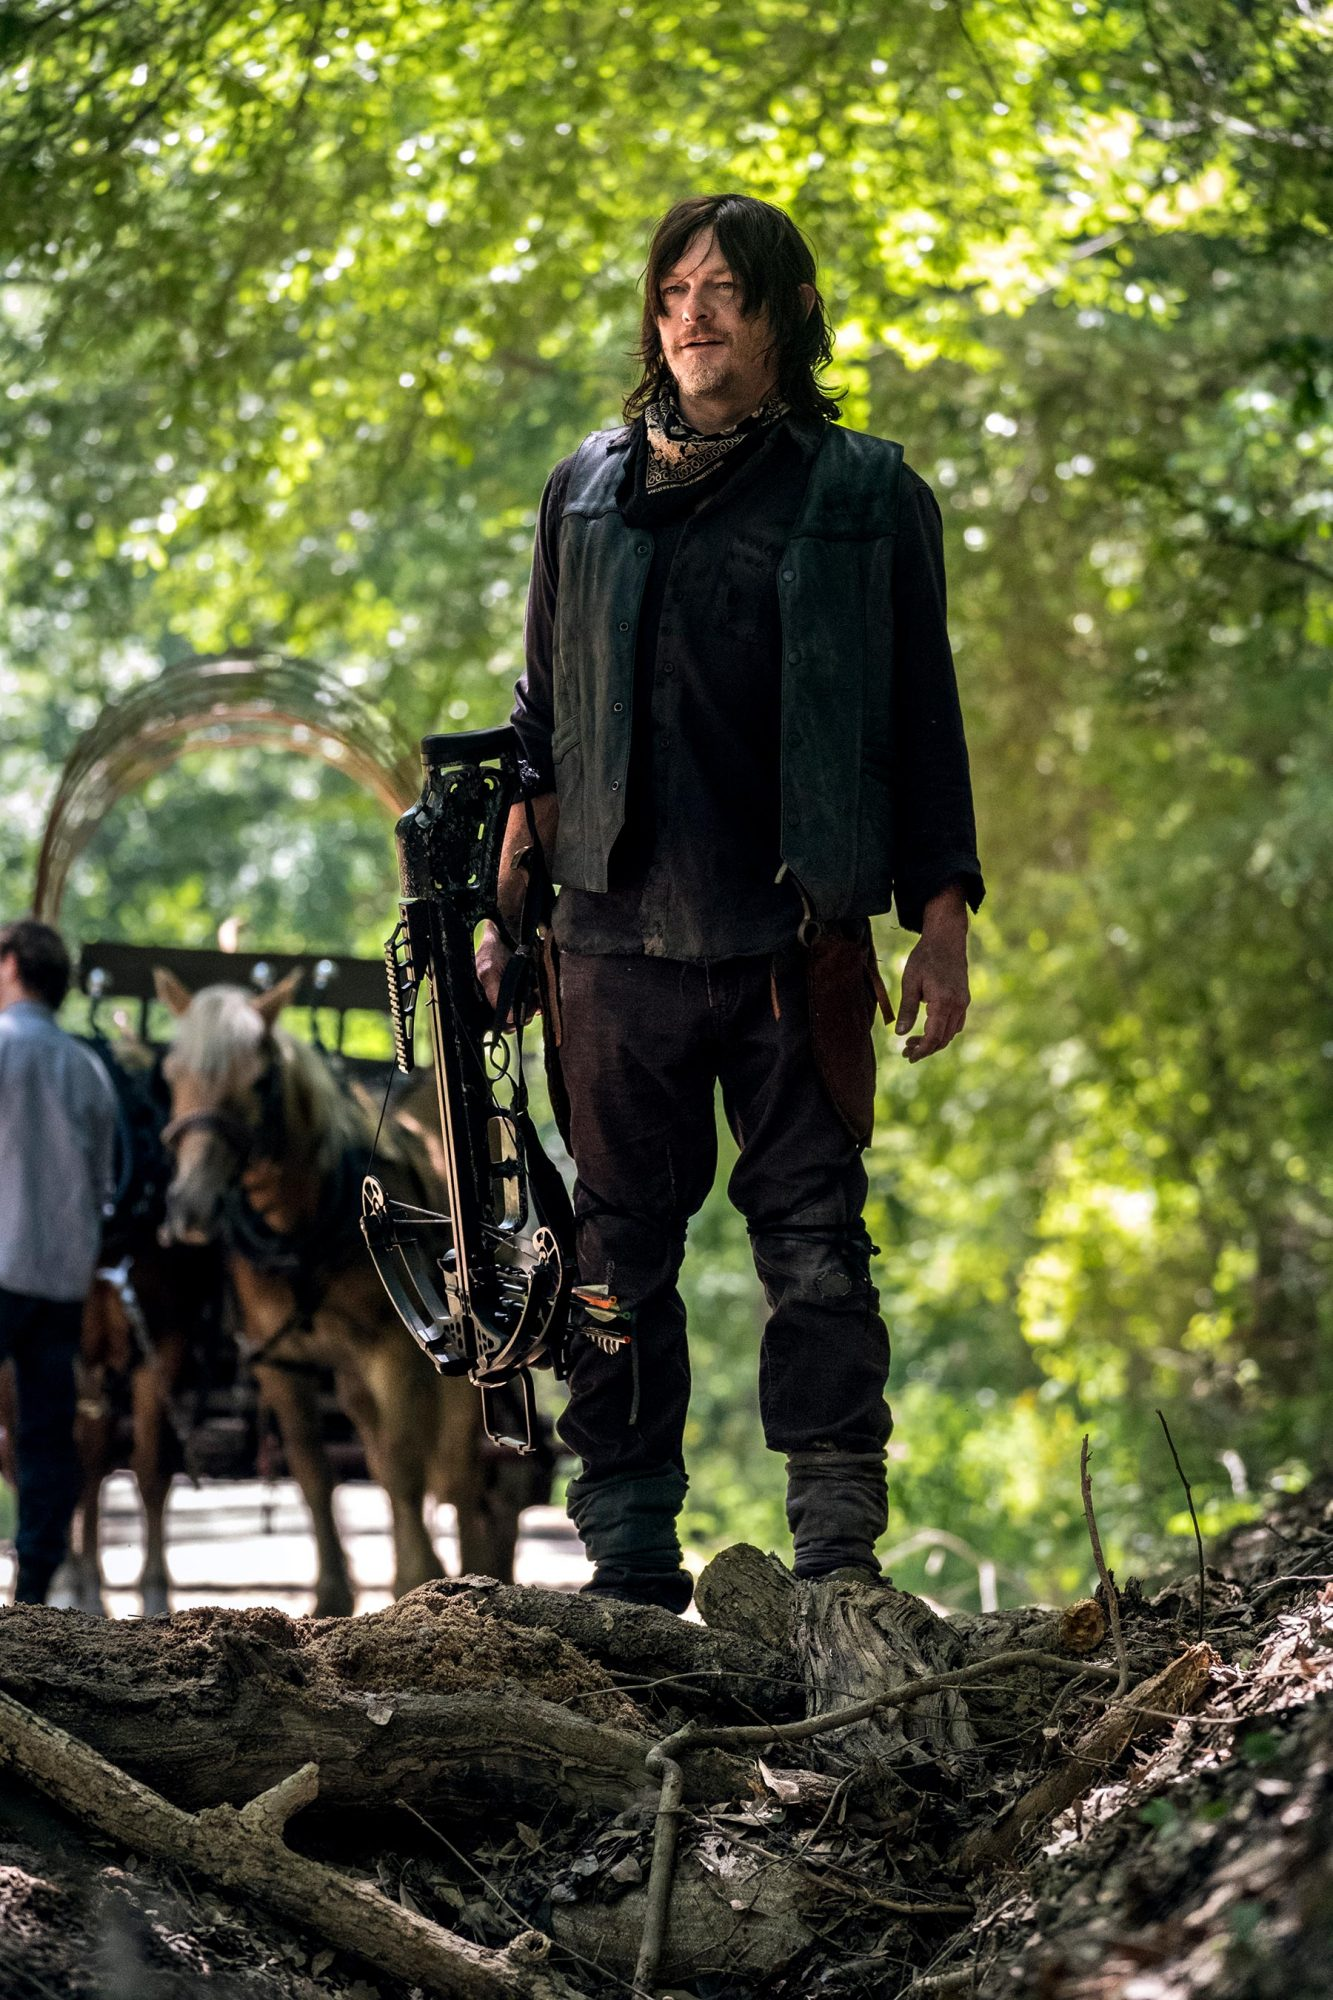 TWD_901_JLD_0501_1092_RT